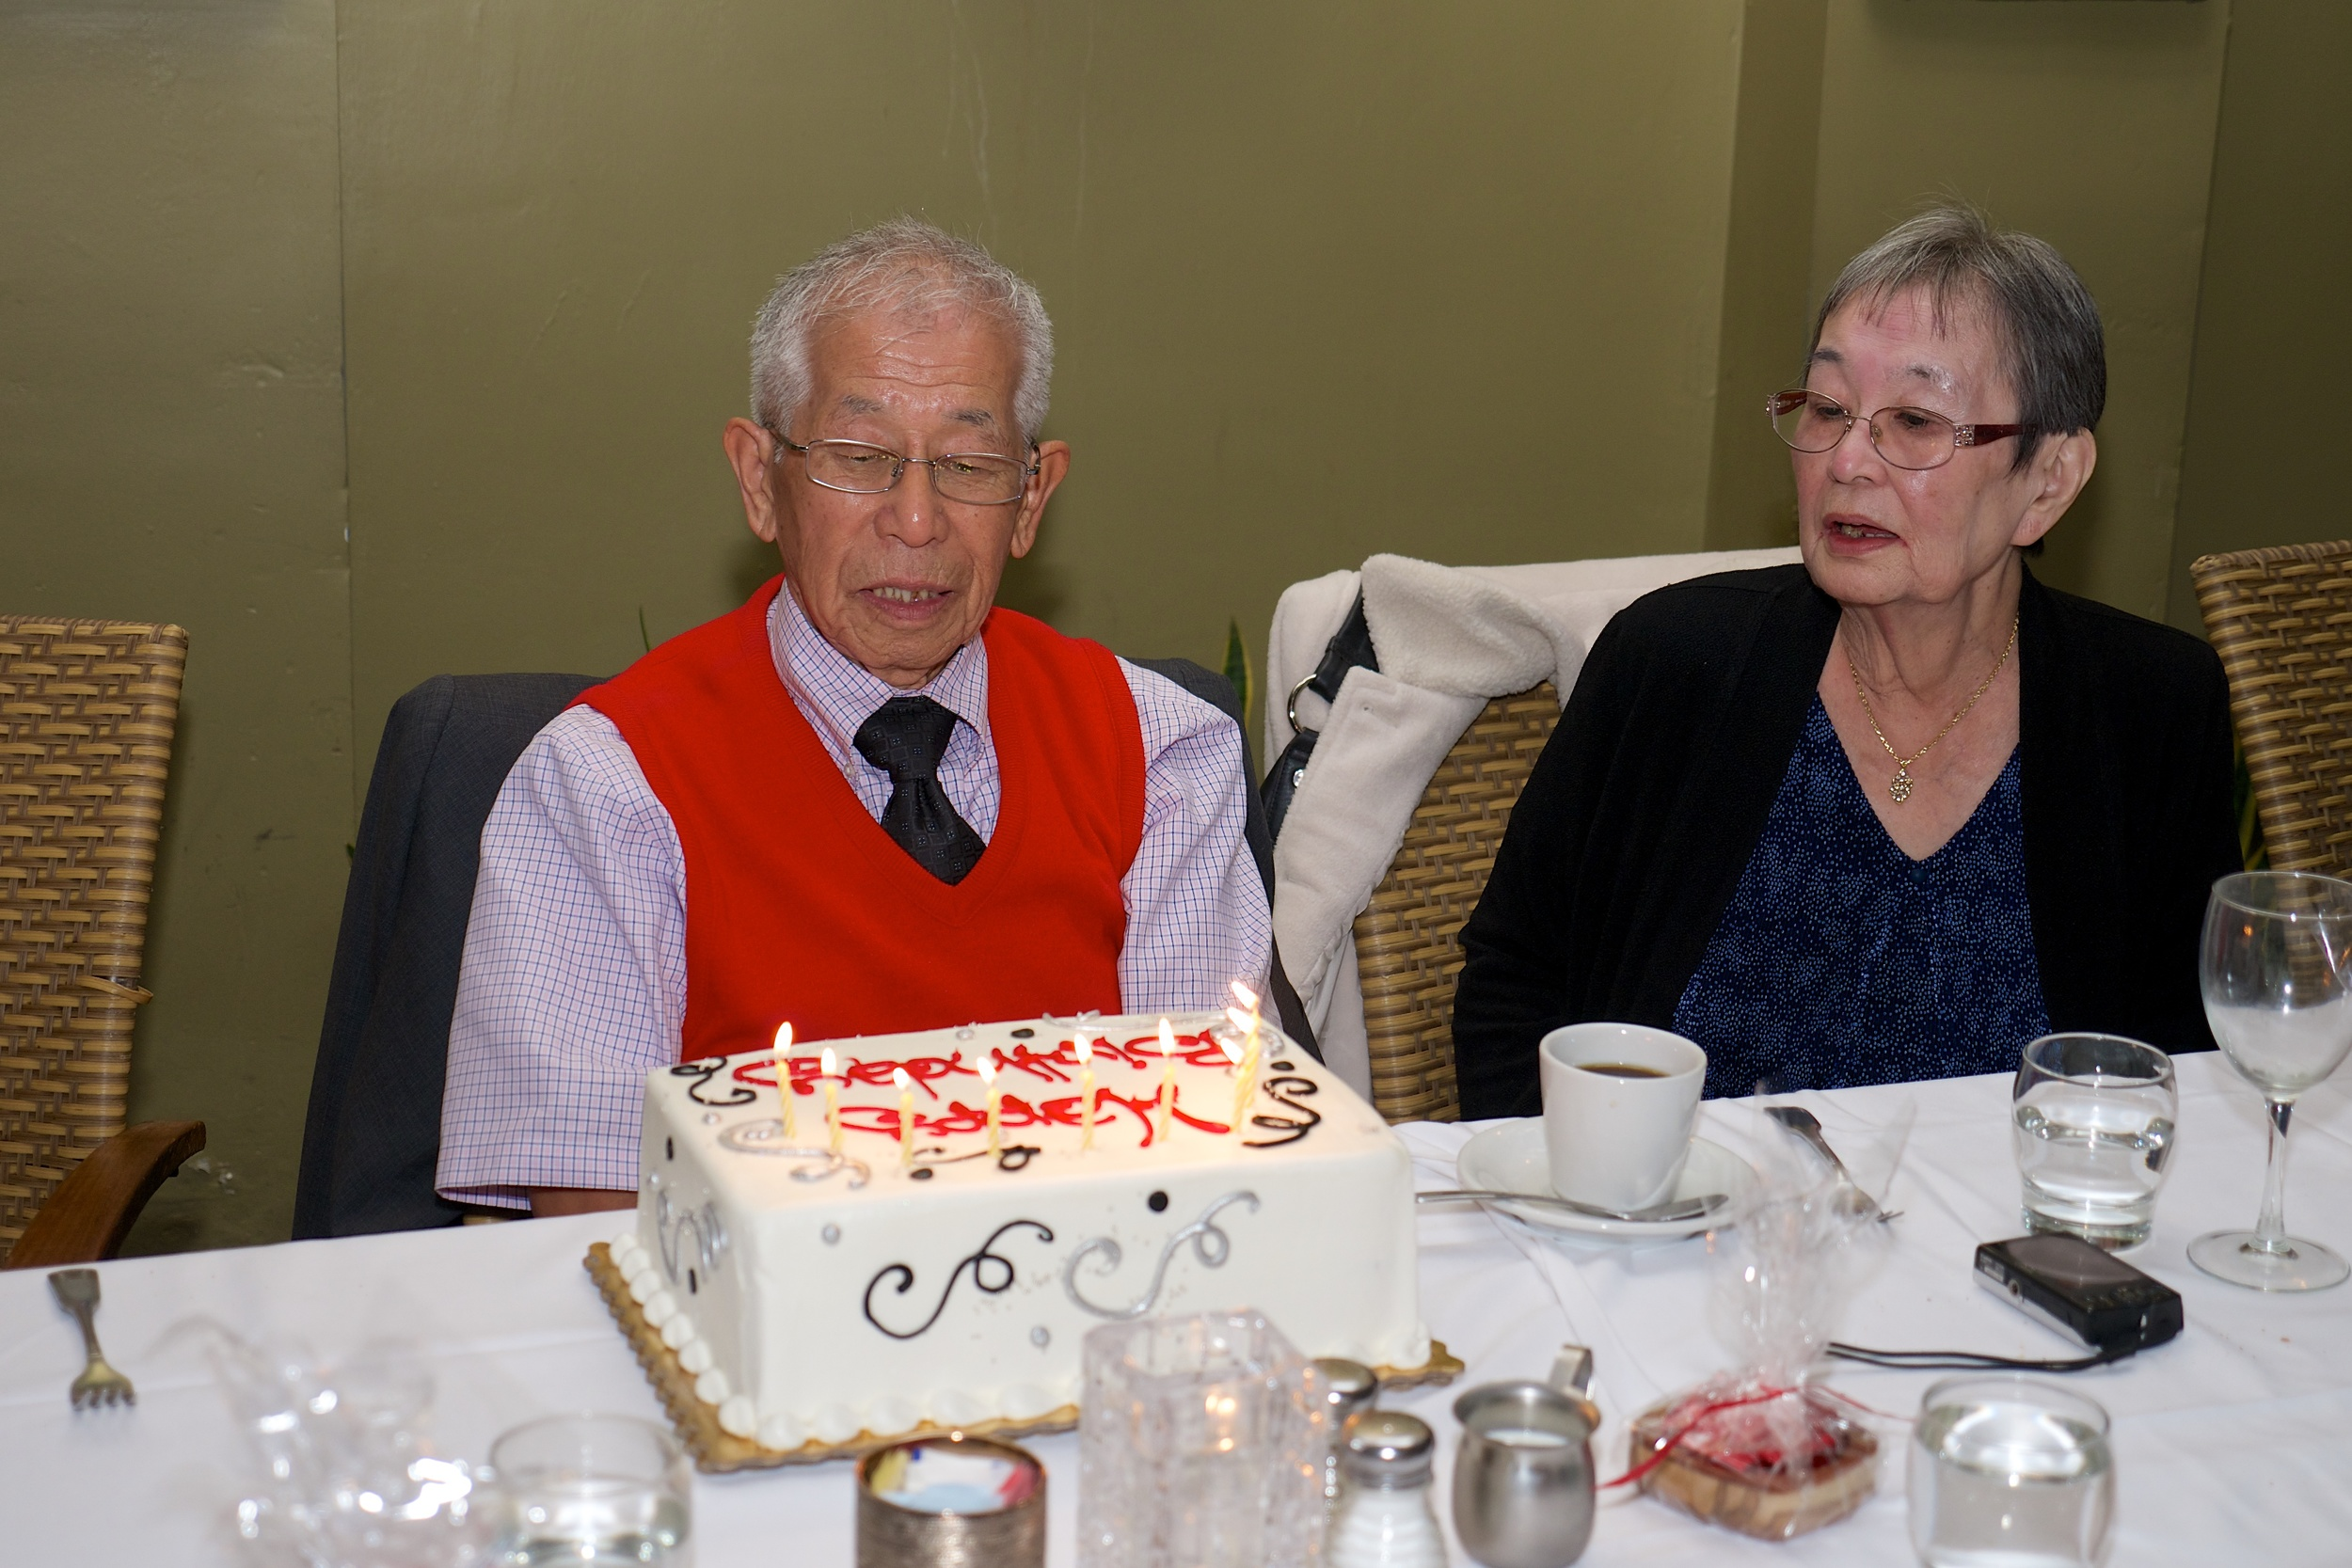 """Sumi examining the cake as we all sang """"Happy Birthday"""" to him"""